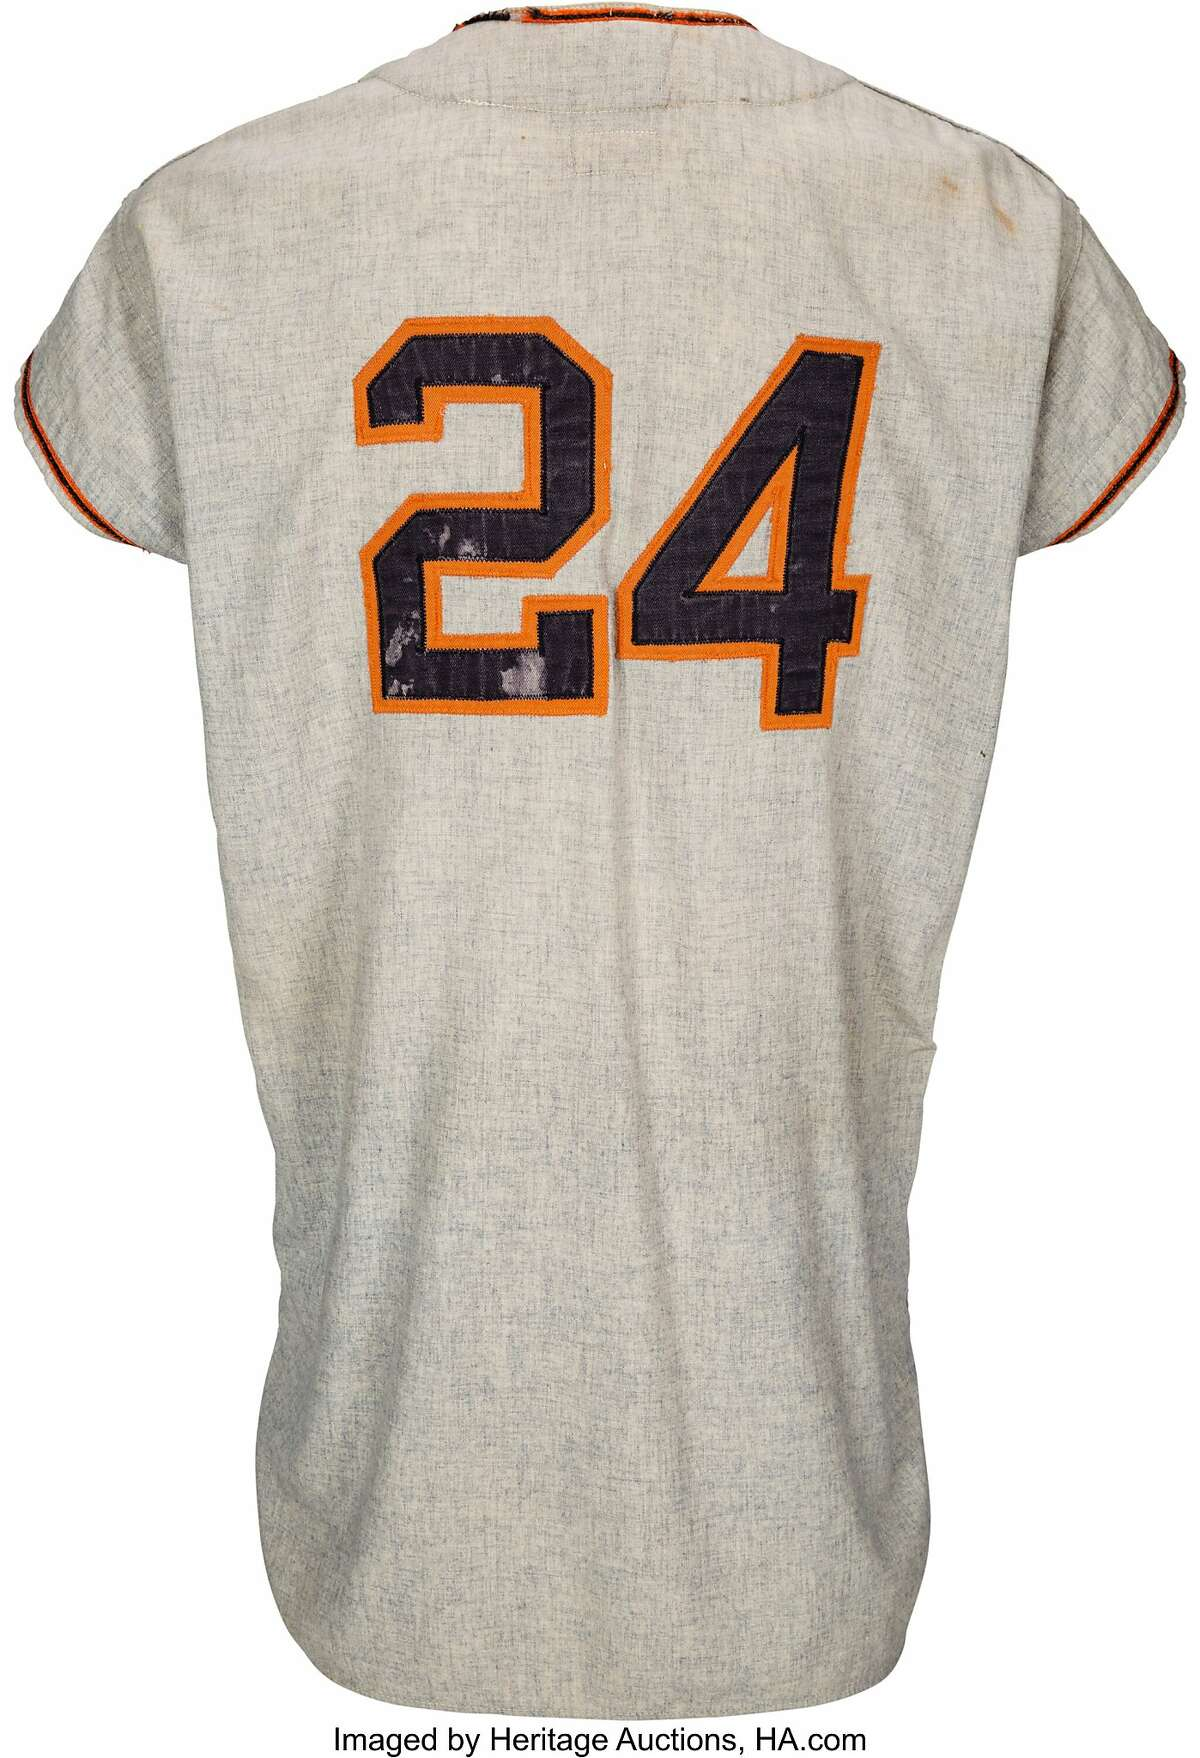 Heritage Auctions said the jersey dated to 1958, when the New York Giants and Brooklyn Dodgers agreed to take their rivalry to the West Coast.